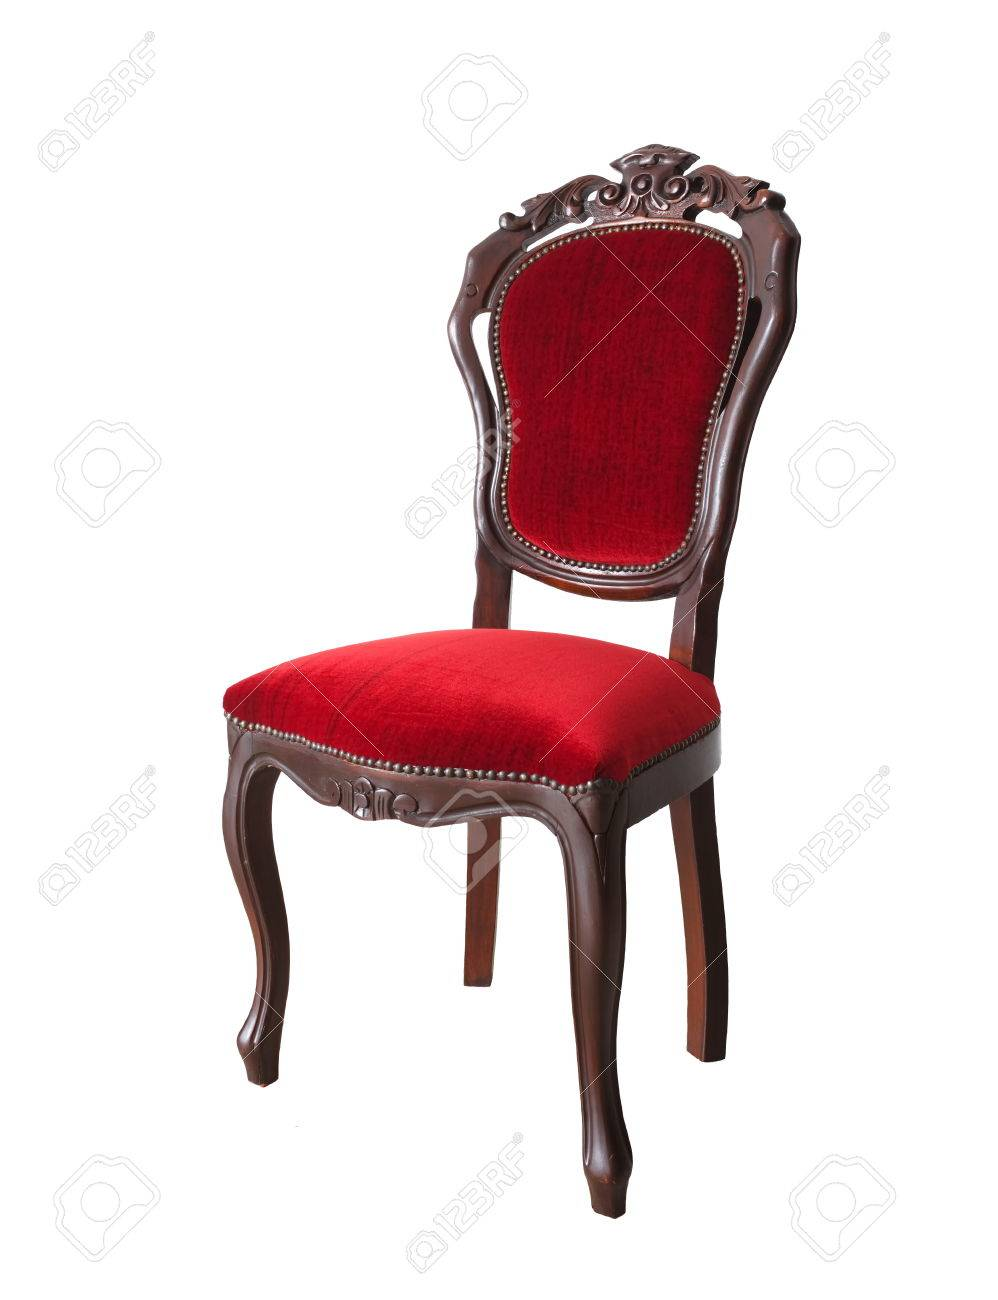 Vintage and antique red chair isolated on a white background Stock Photo -  33130551 - Vintage And Antique Red Chair Isolated On A White Background Stock